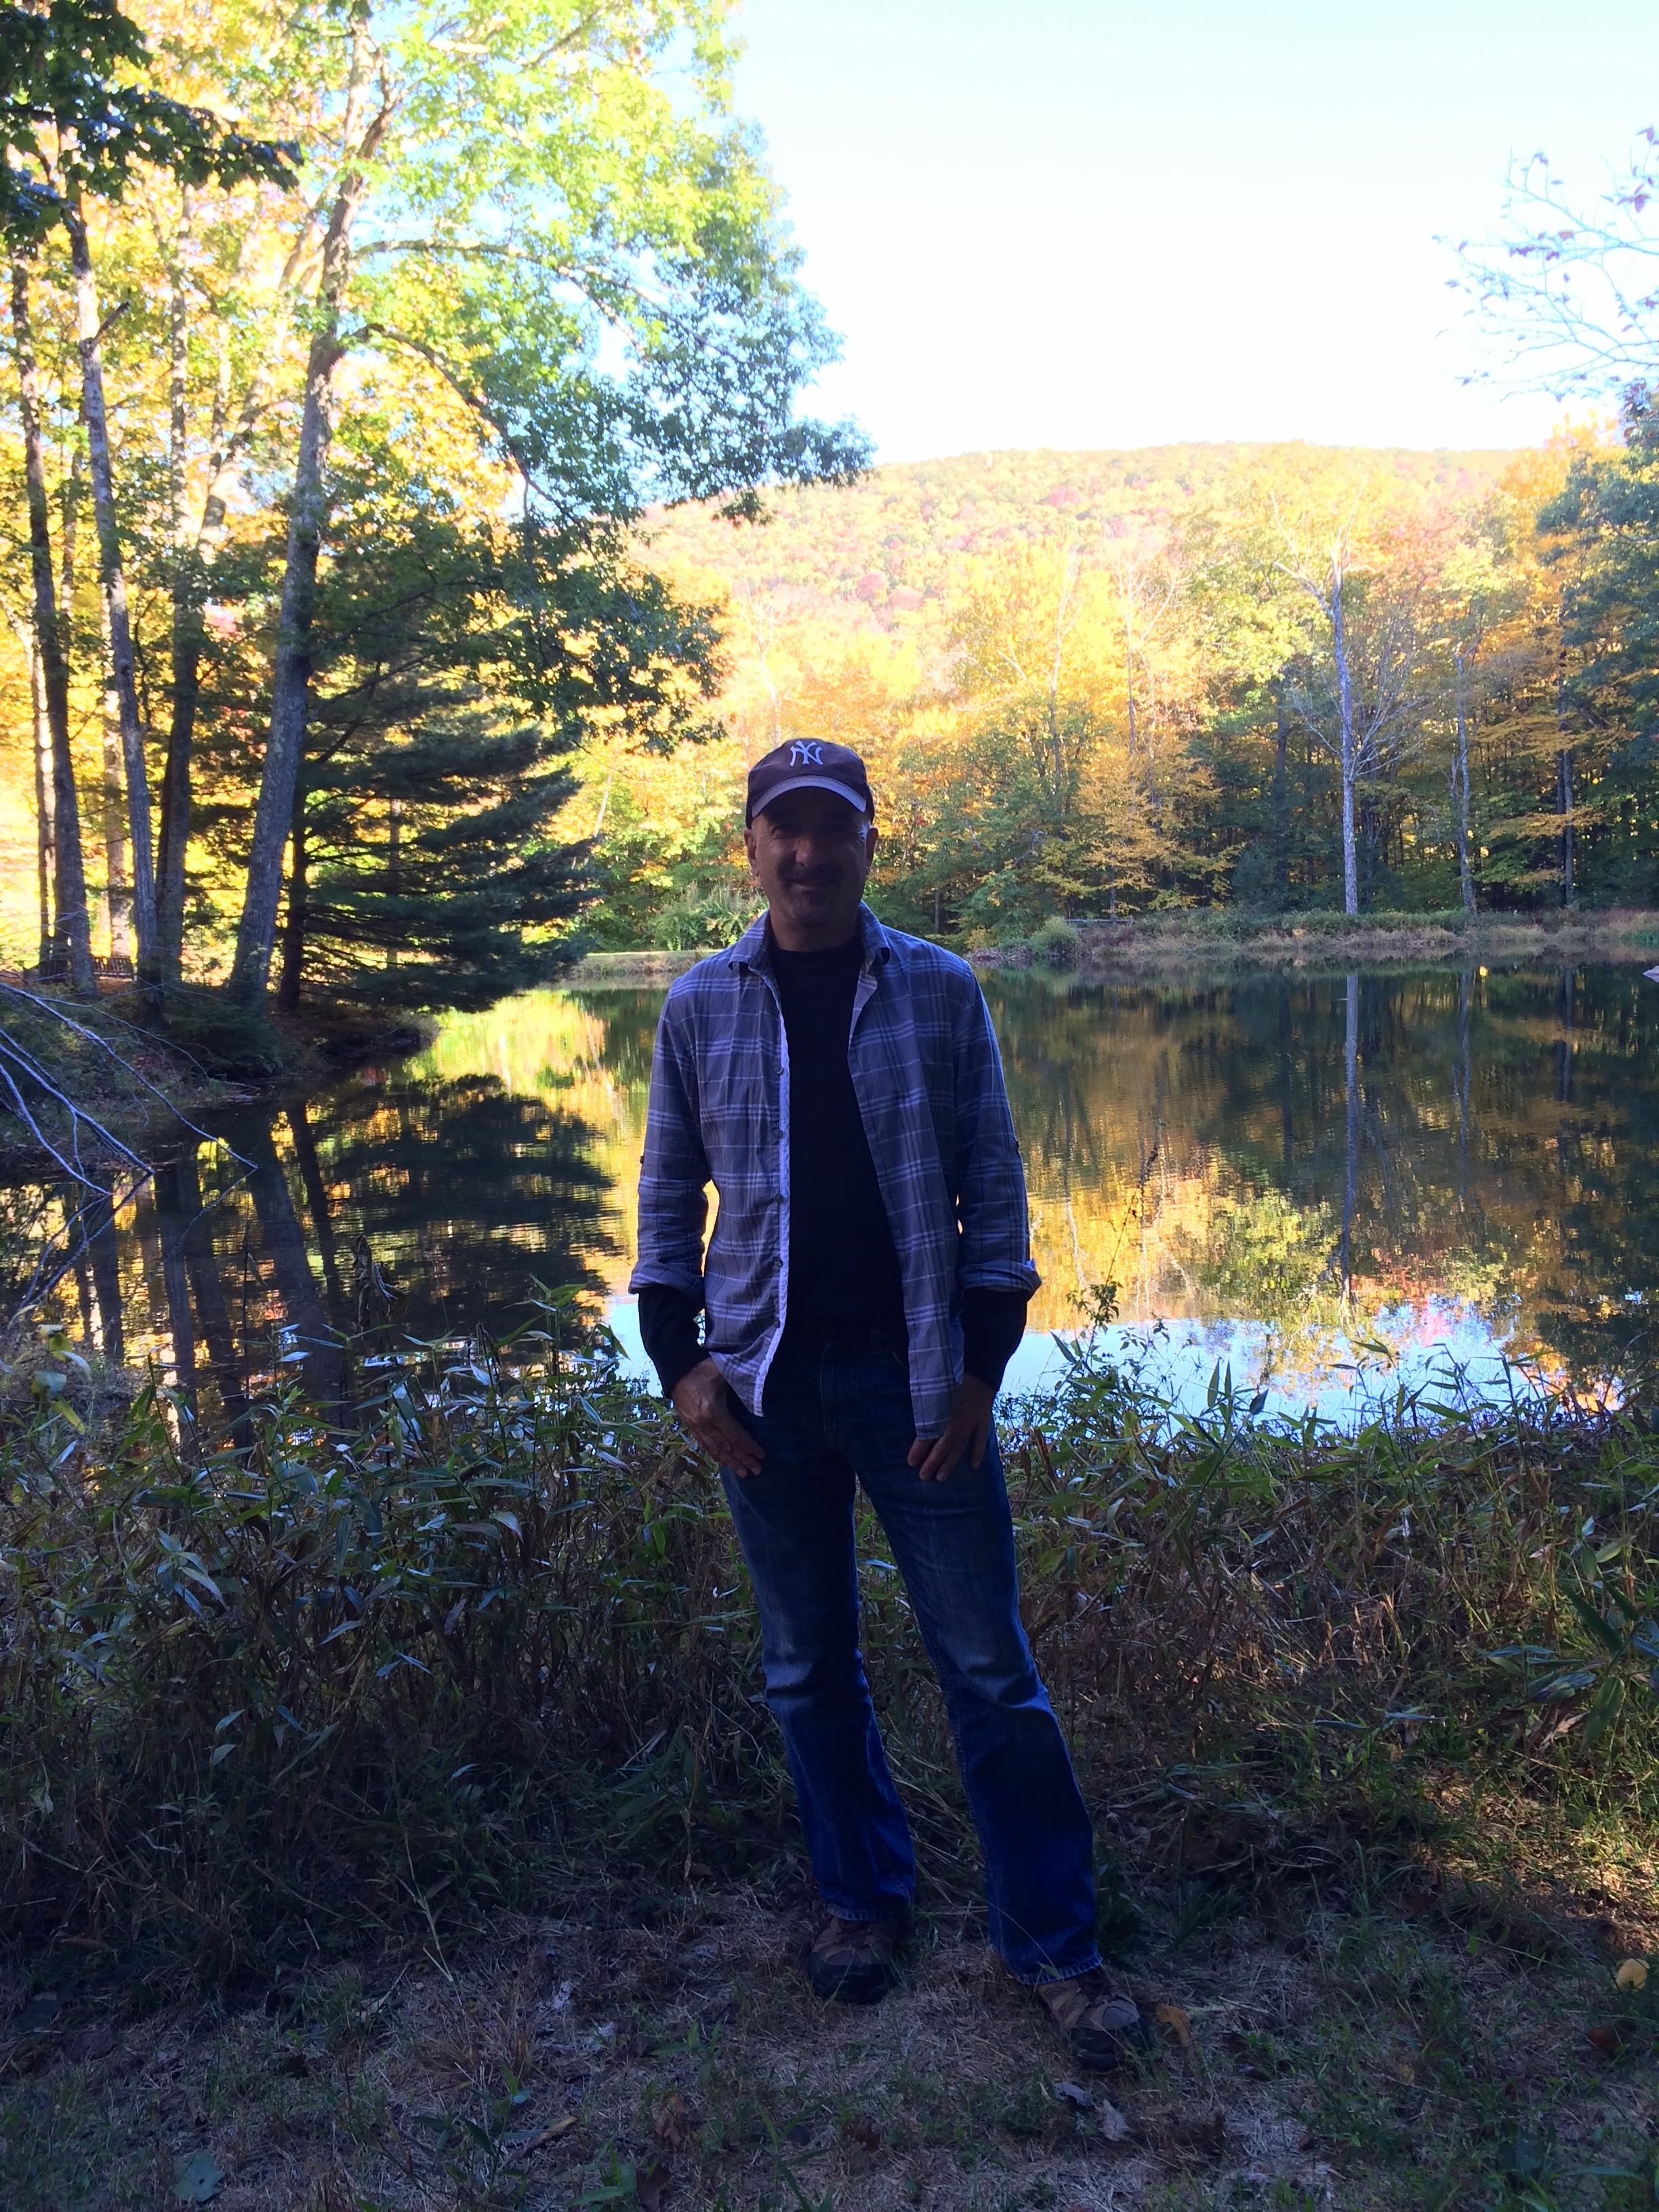 me at the pond Oct 2015.jpg